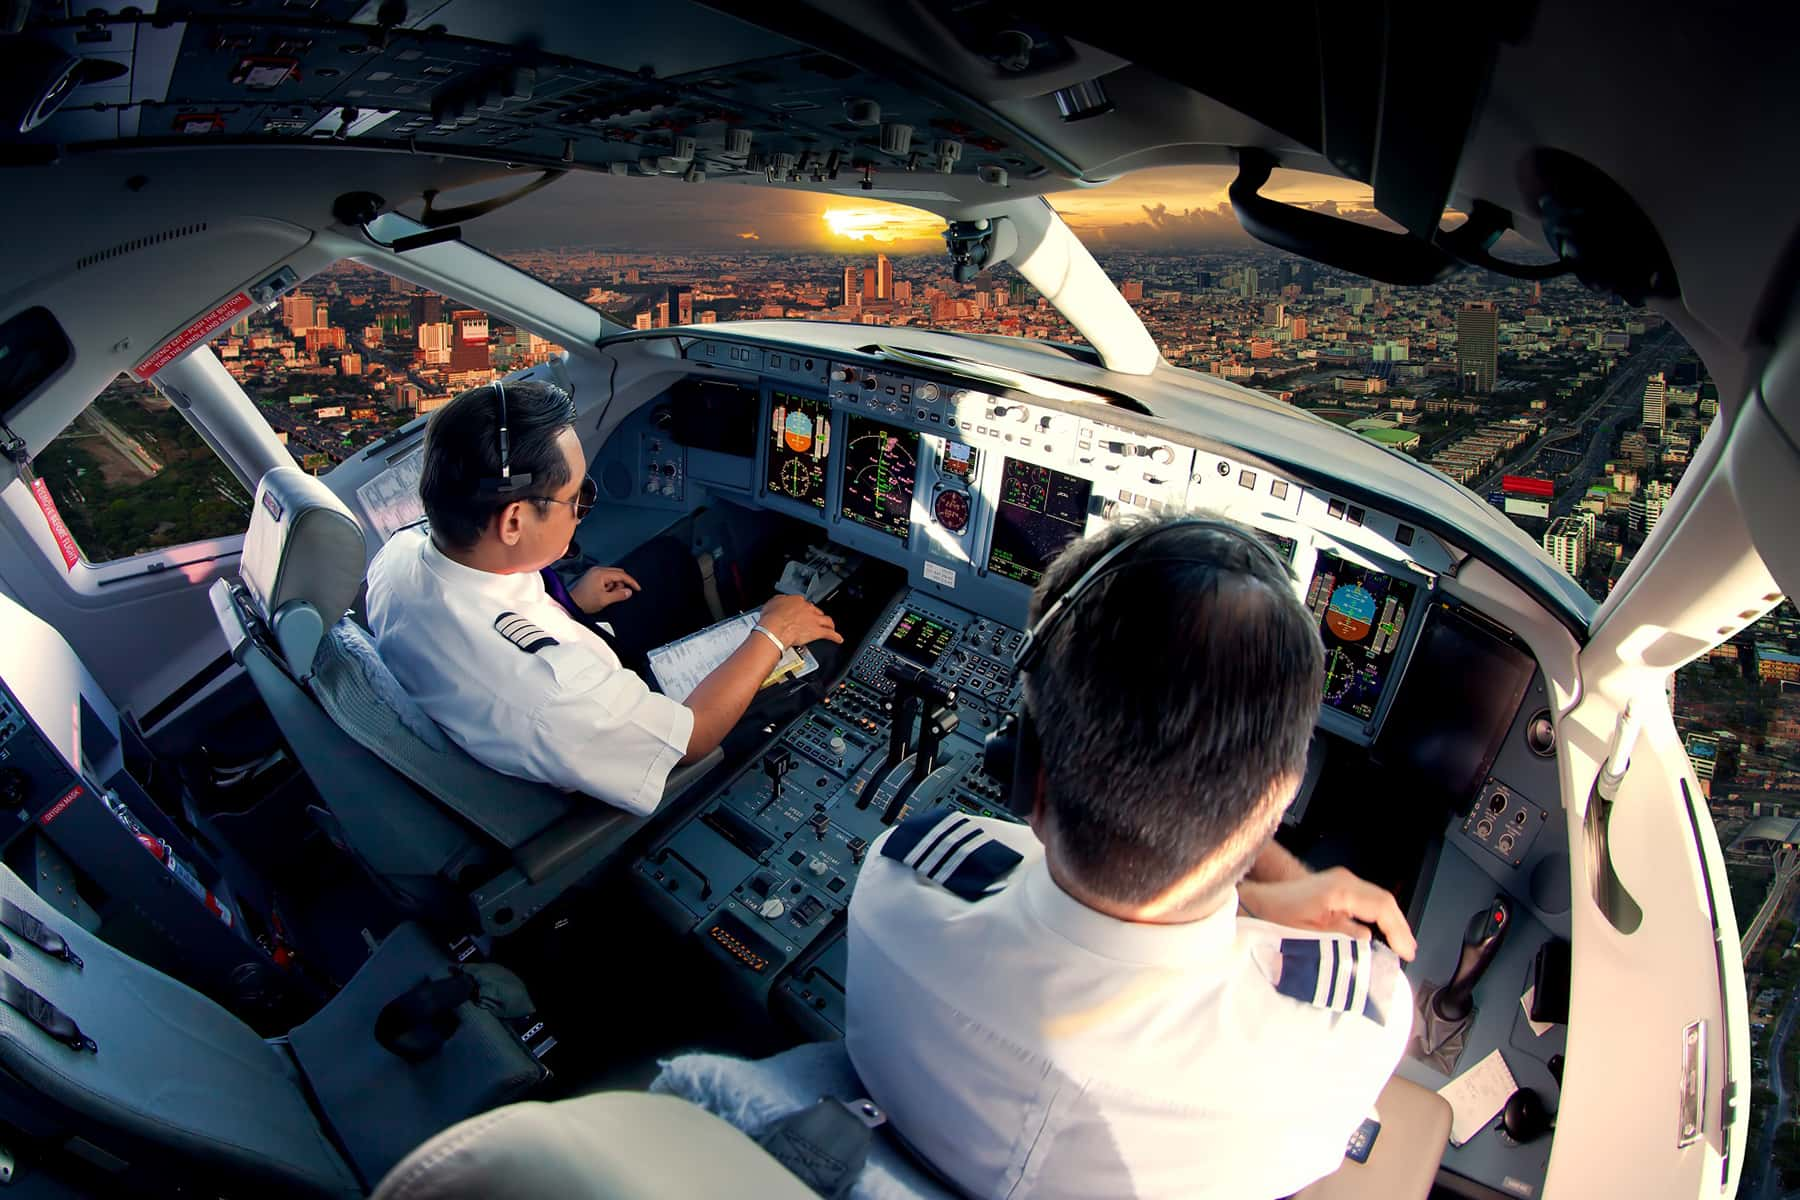 Airlines will face pilot shortages